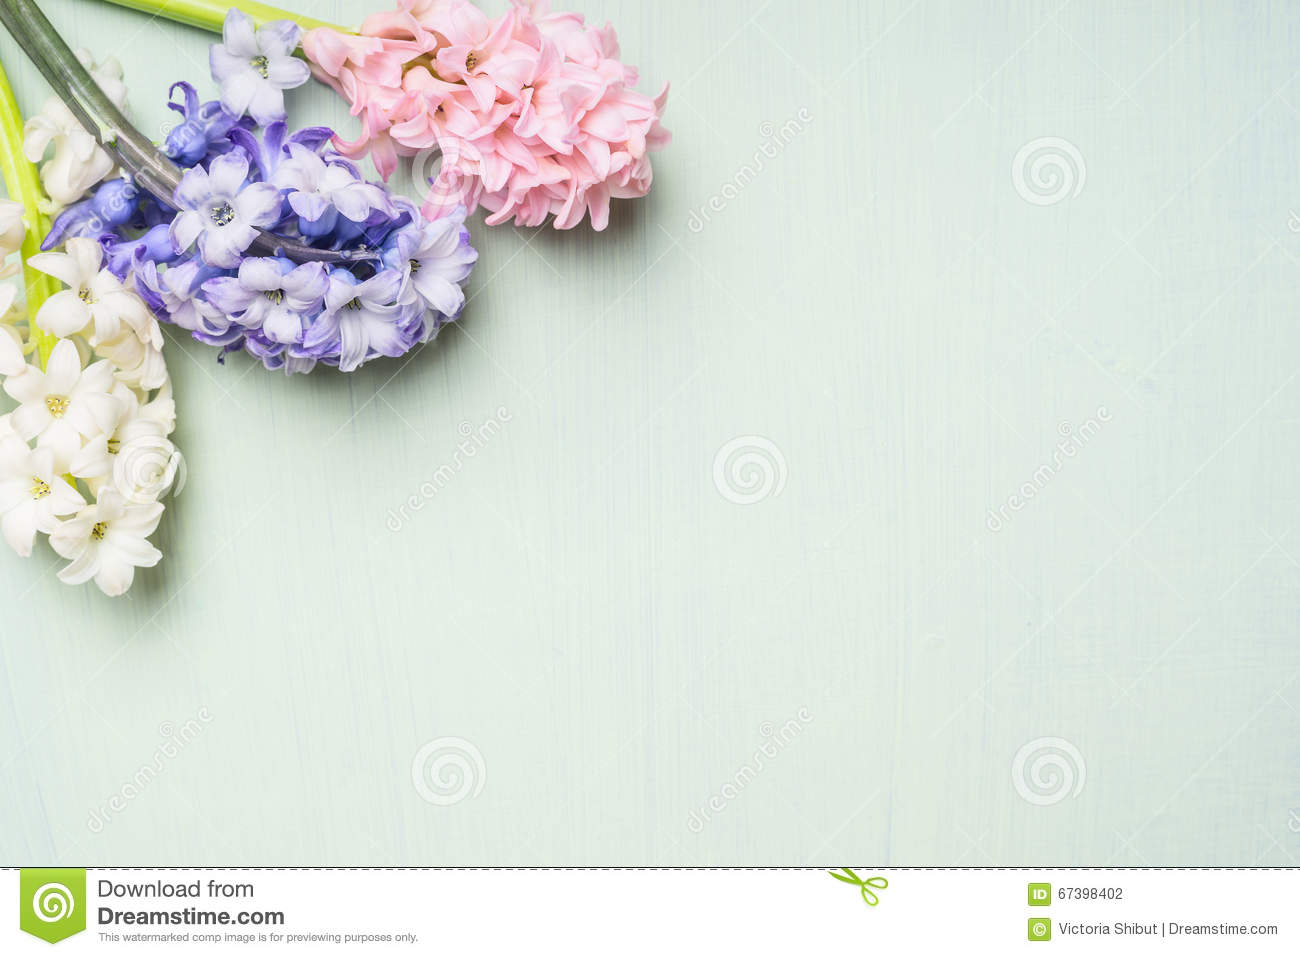 Pinkwhite And Blue Hyacinths Flowers Bunch On Light Shabby Chic Background Top View